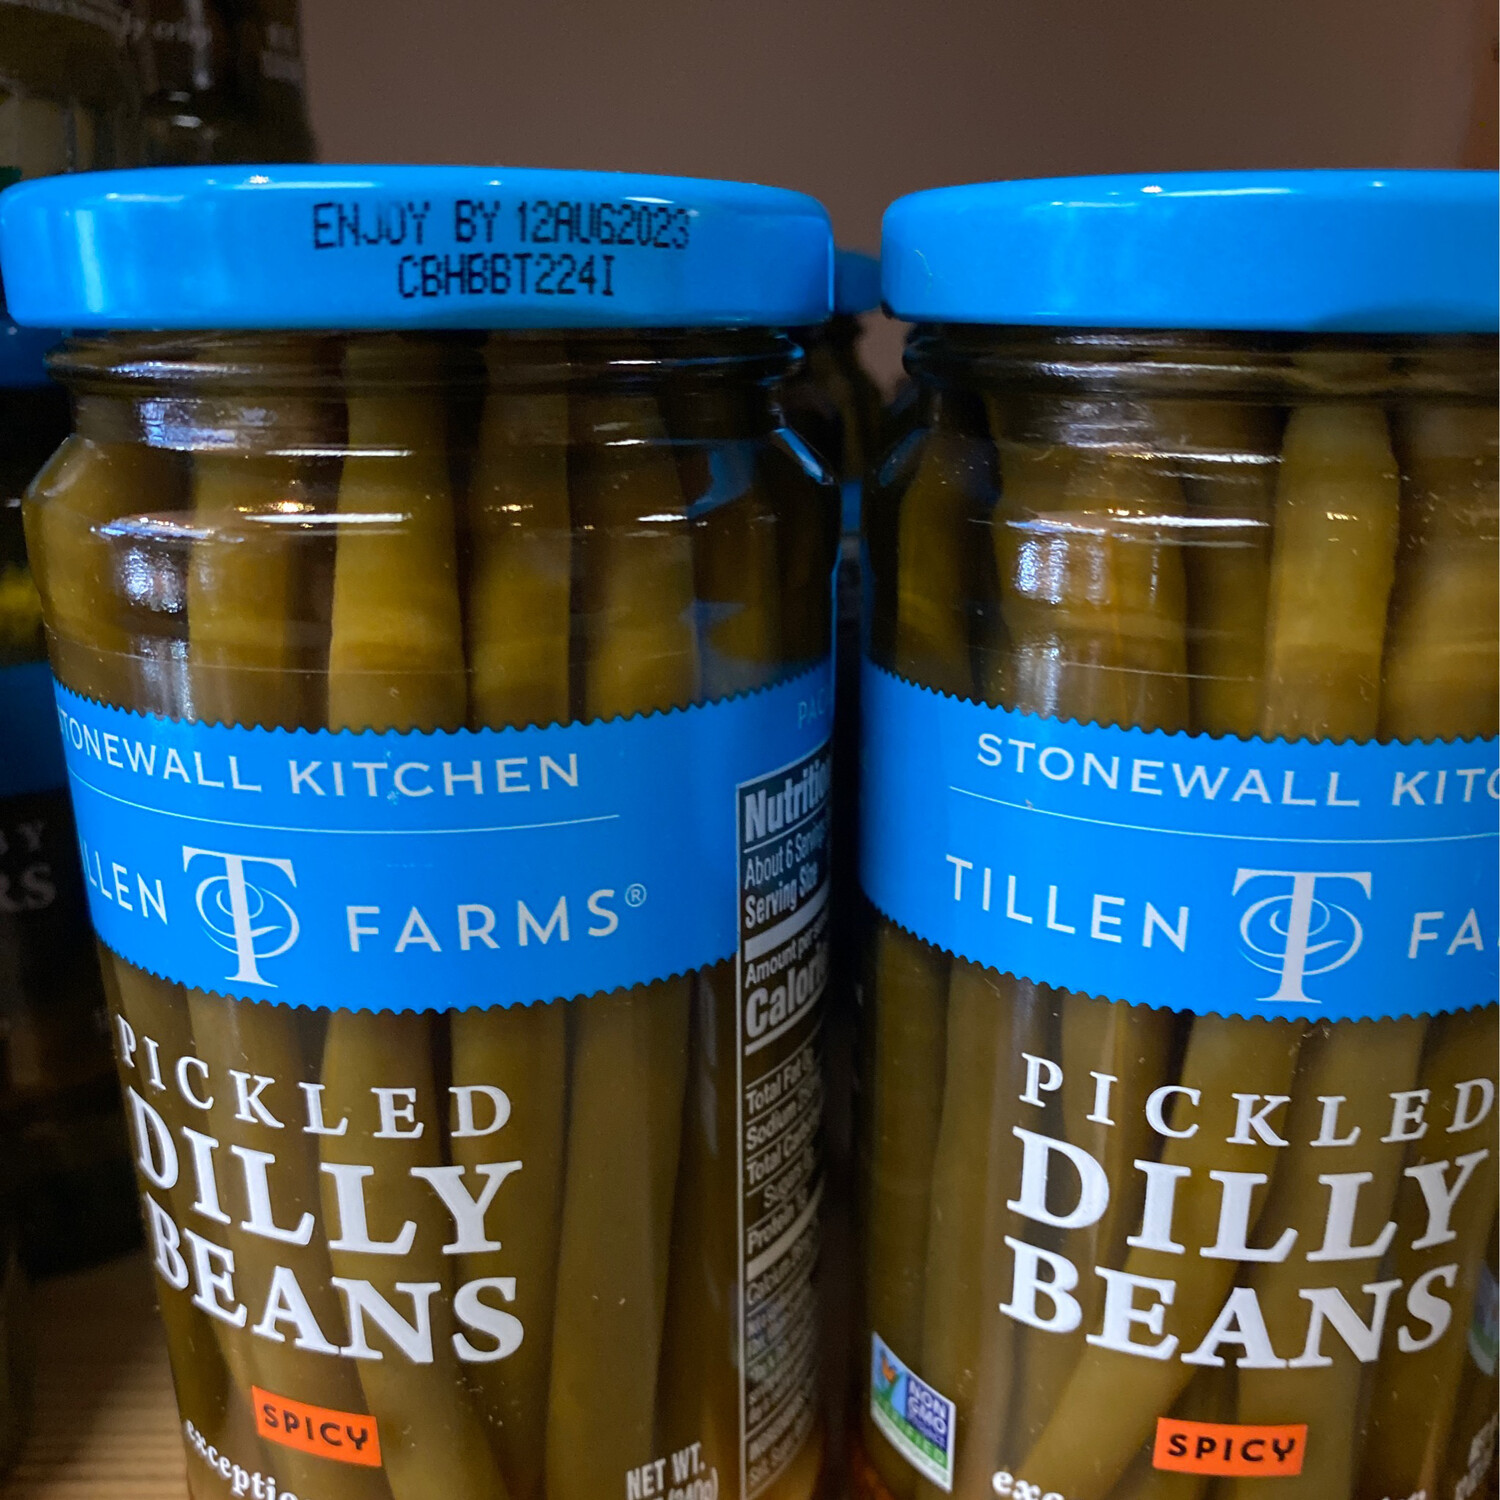 Pickled Dilly beans Spicy